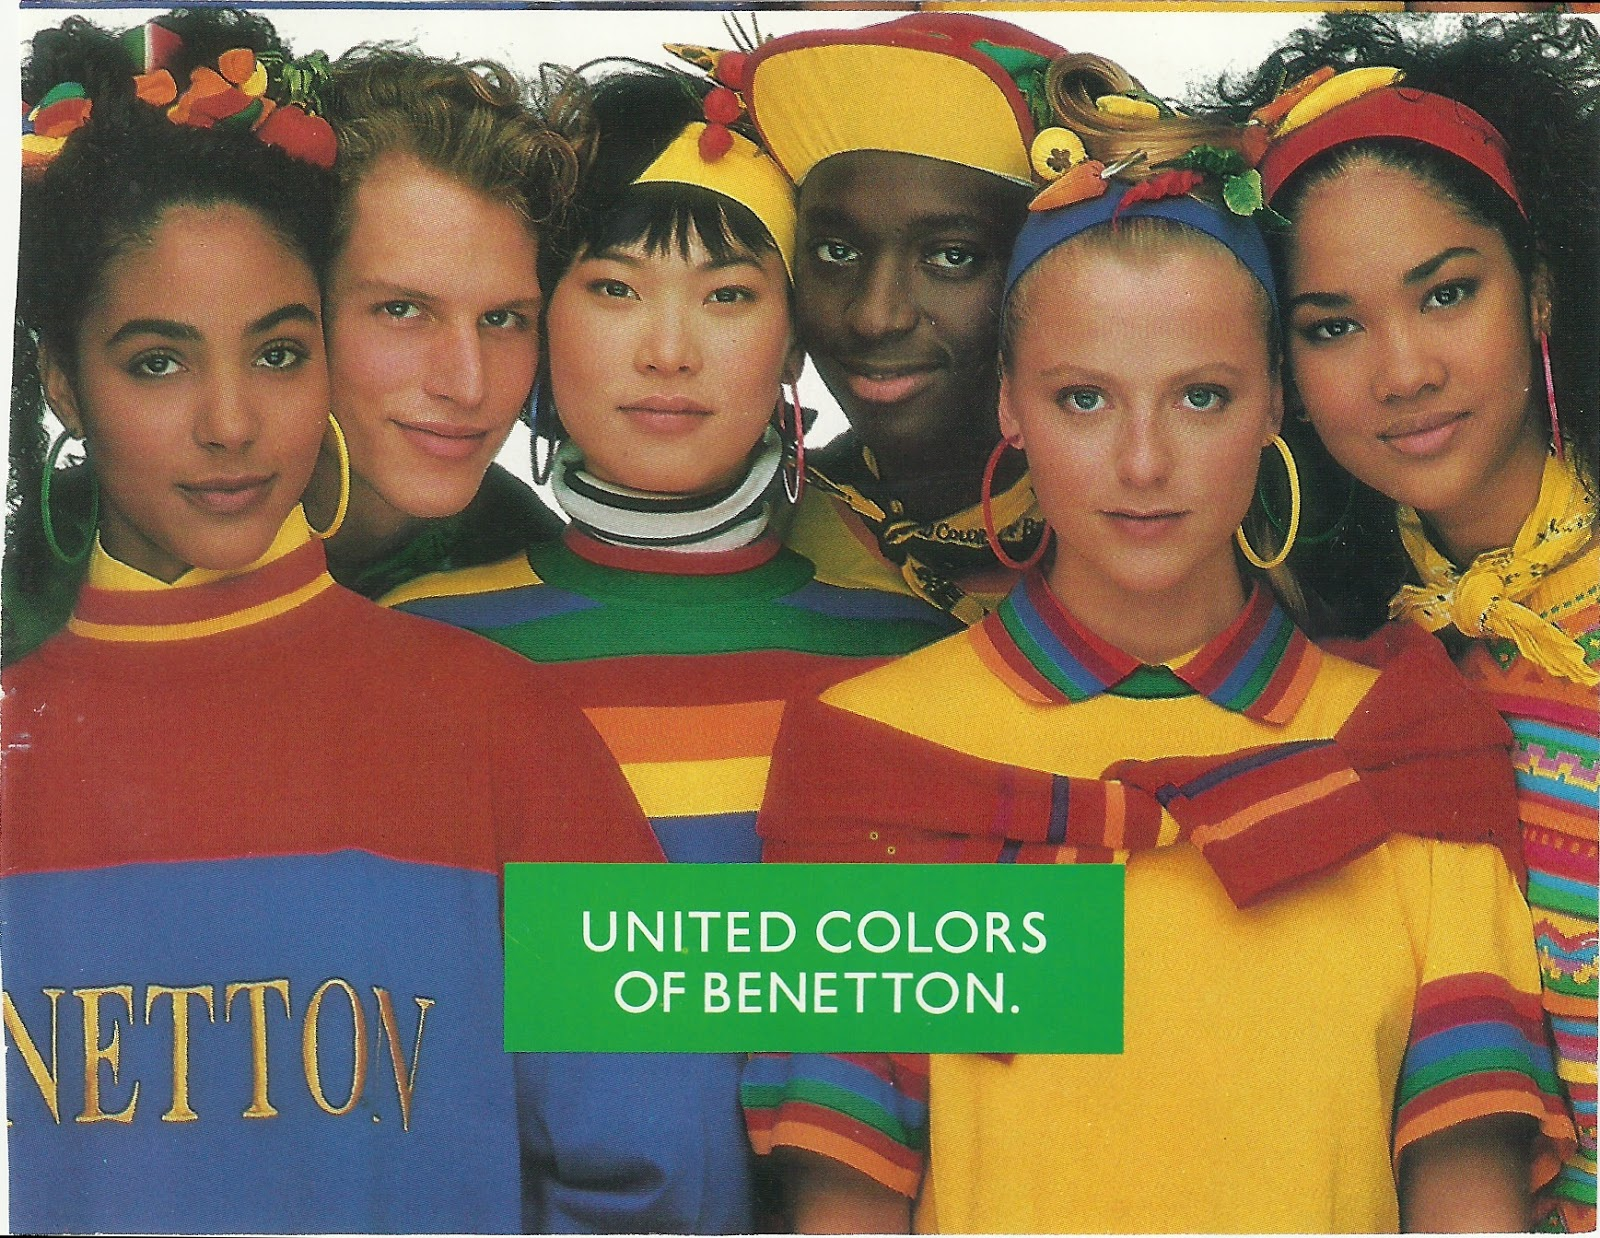 the united colors of benetton clothing Benetton group srl (italian pronunciation: ) is a global fashion brand based in ponzano veneto, italy the name comes from the benetton family , who founded the company in 1965 benetton has a network of about 5,000 stores in the main international markets.